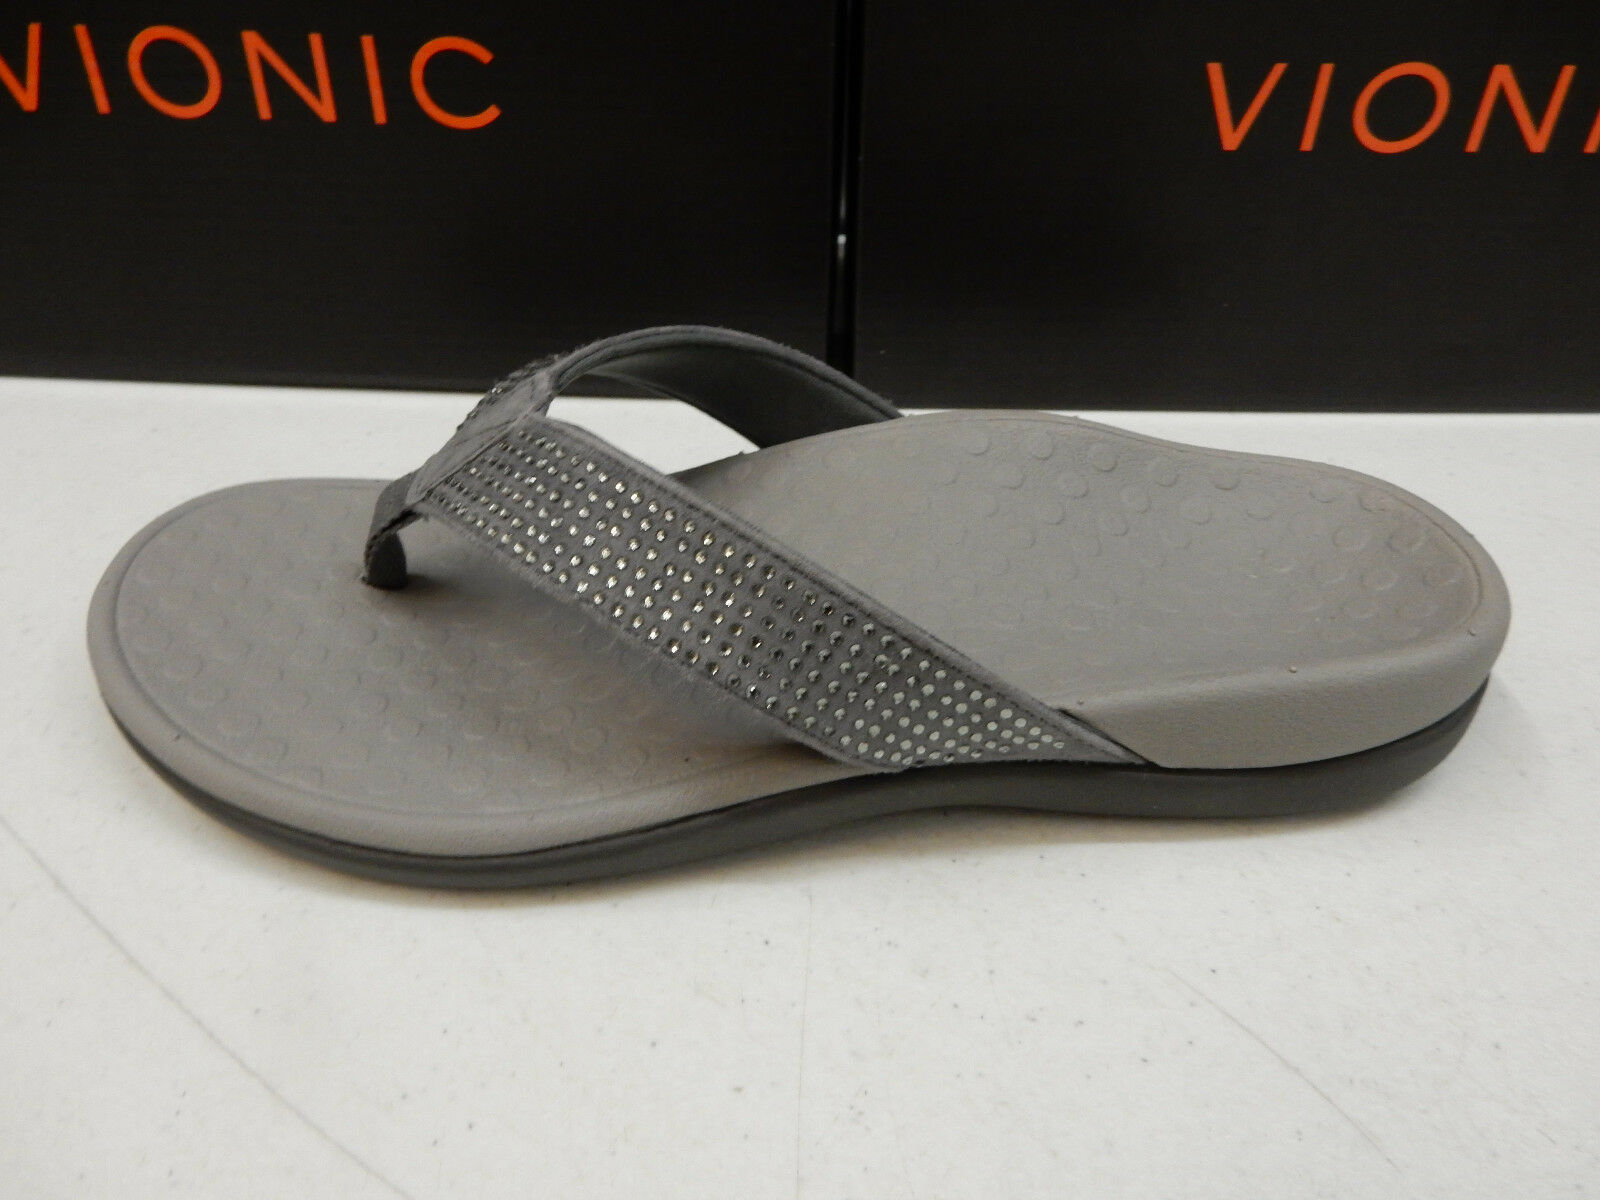 VIONIC WOMENS SANDALS TIDE RHINESTONES PEWTER SIZE 6